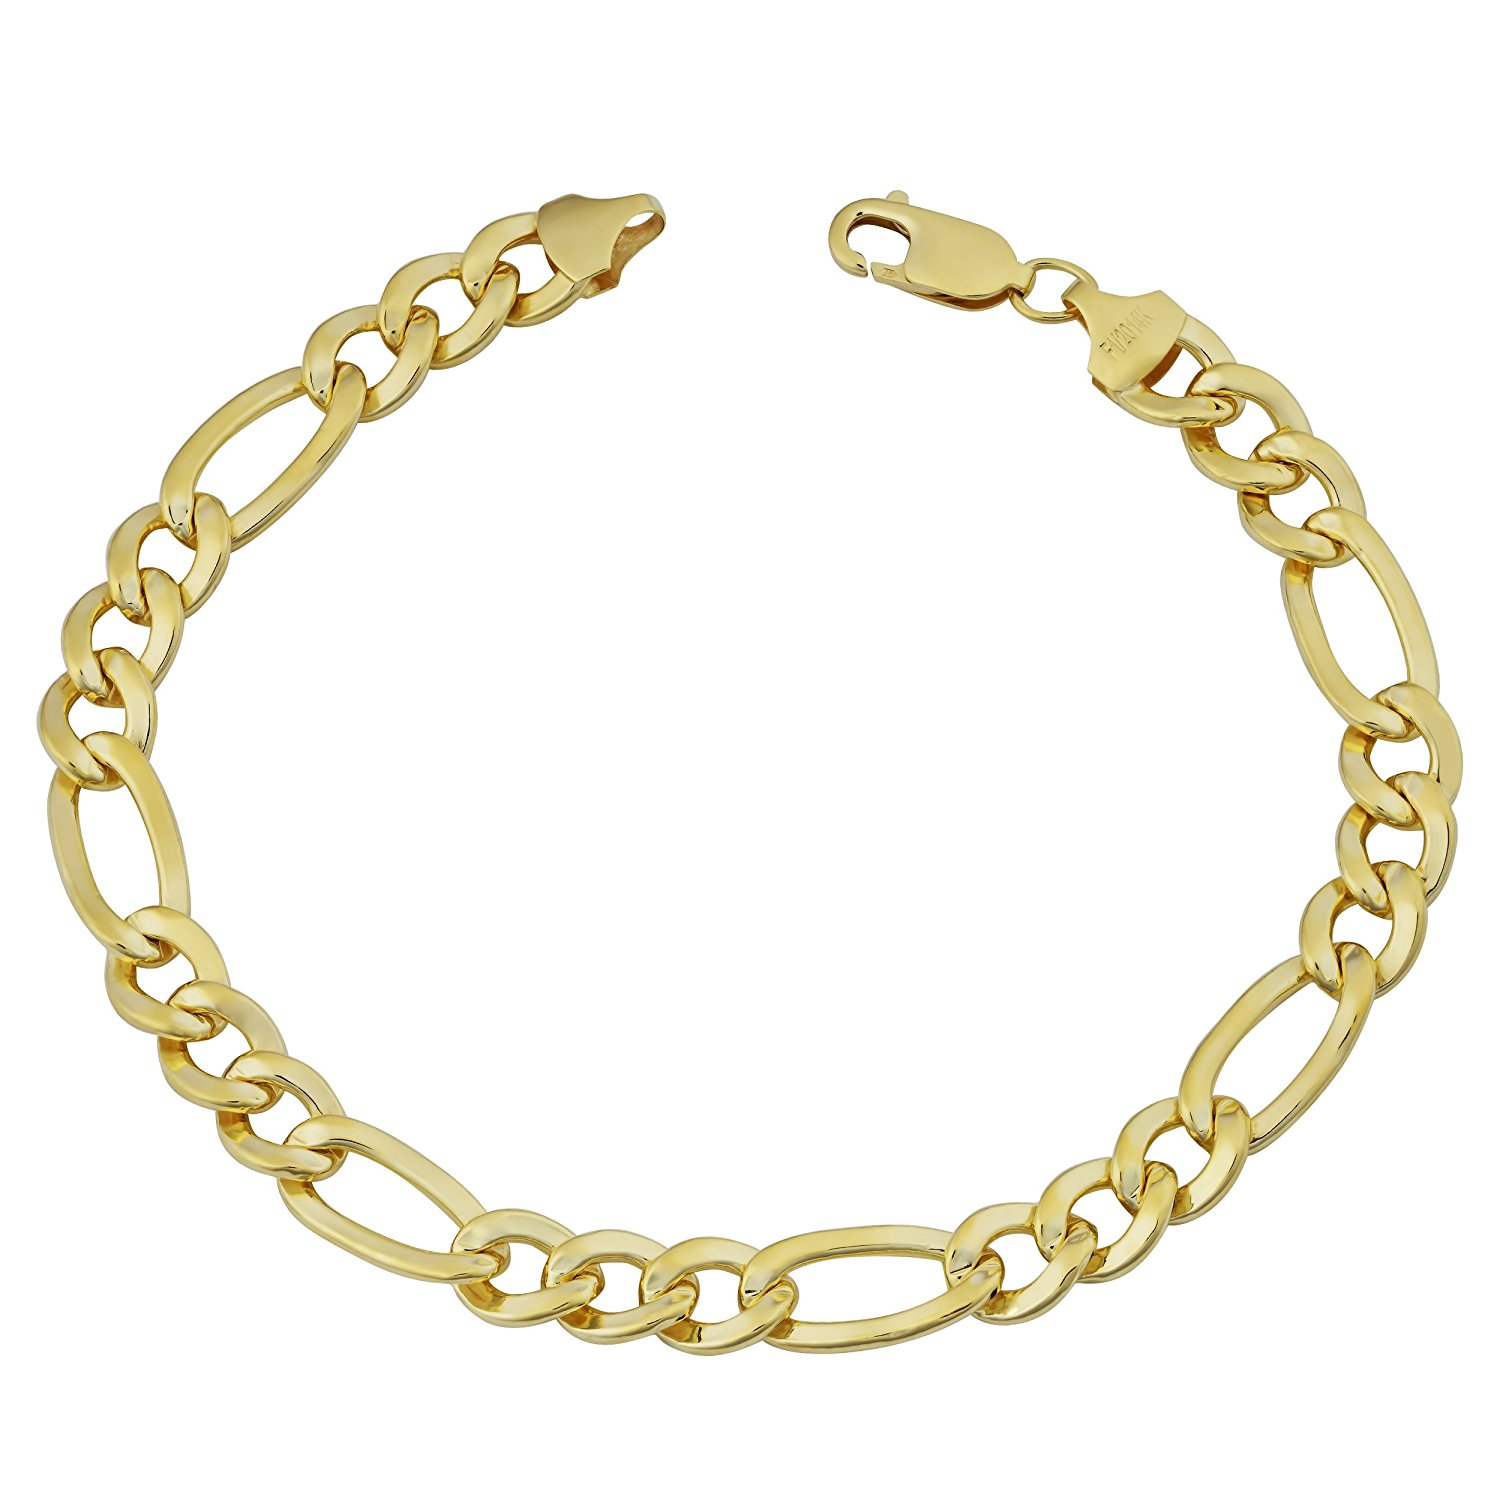 14K Yellow Gold Filled Solid Figaro Chain Bracelet, 7.0 mm, 9″